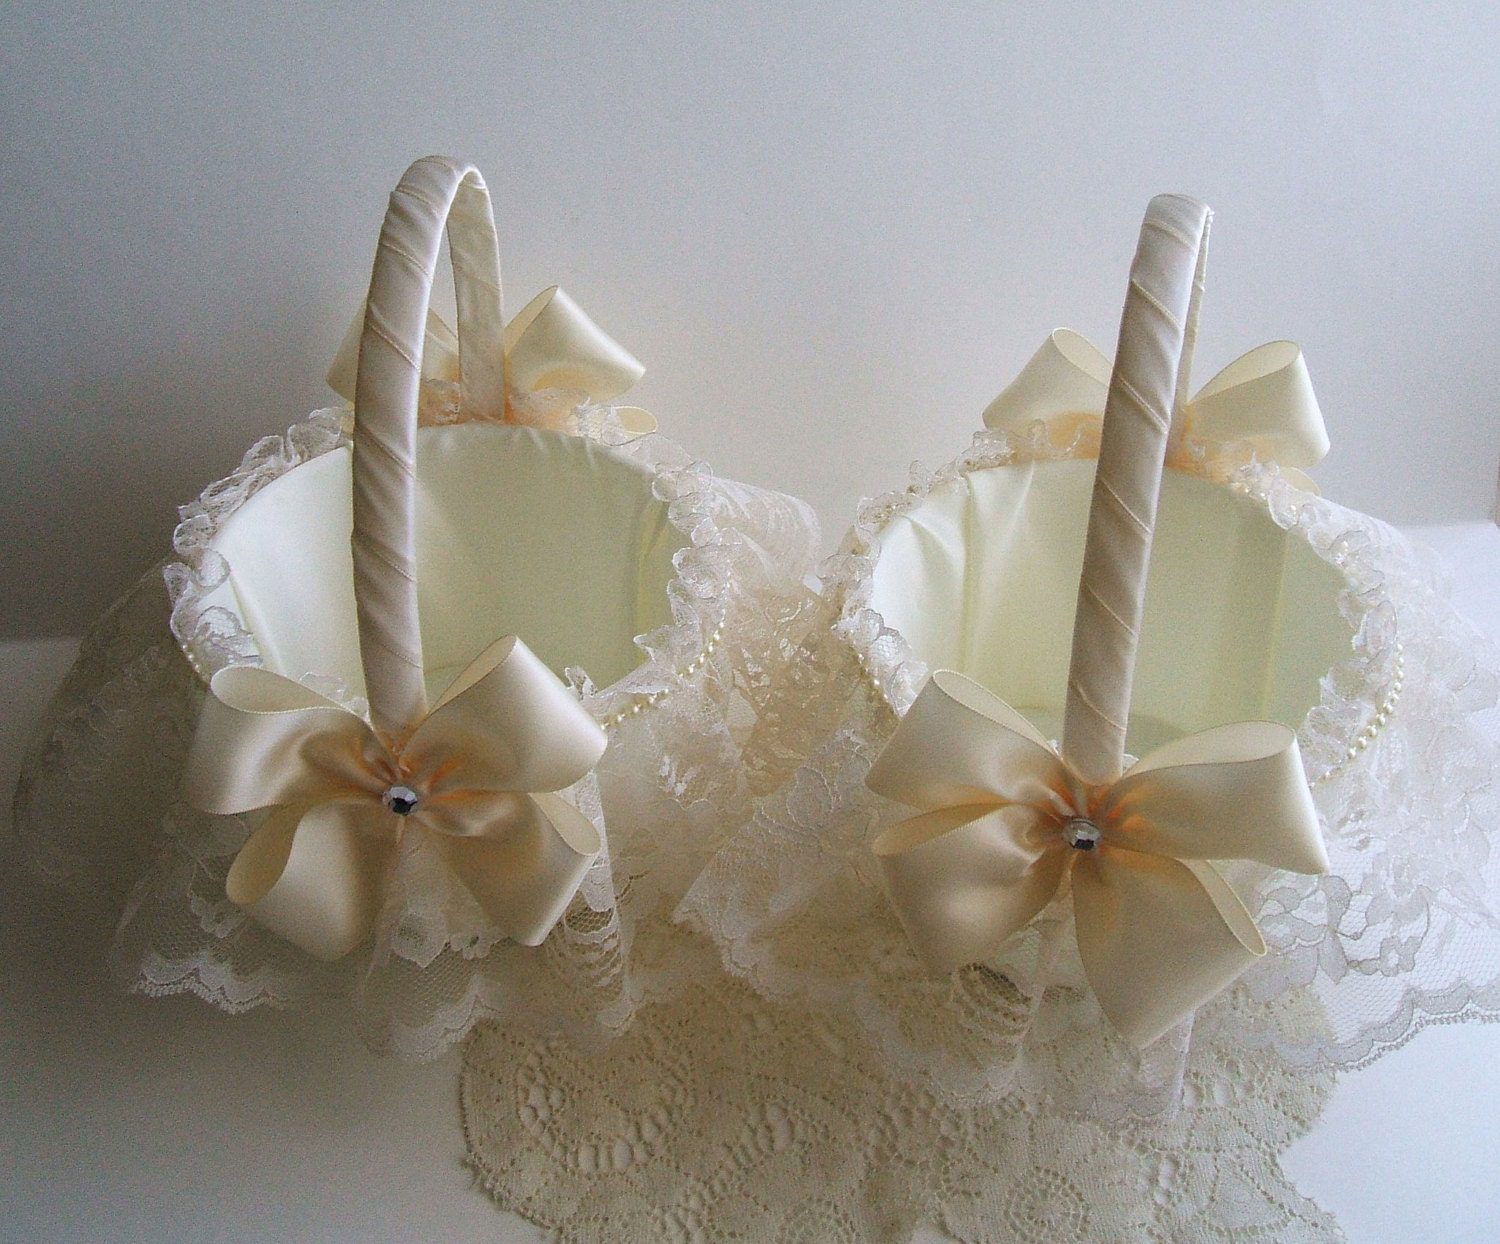 Pair Of Wedding Flowergirl Baskets Handmade Nuance With Lace Etsy